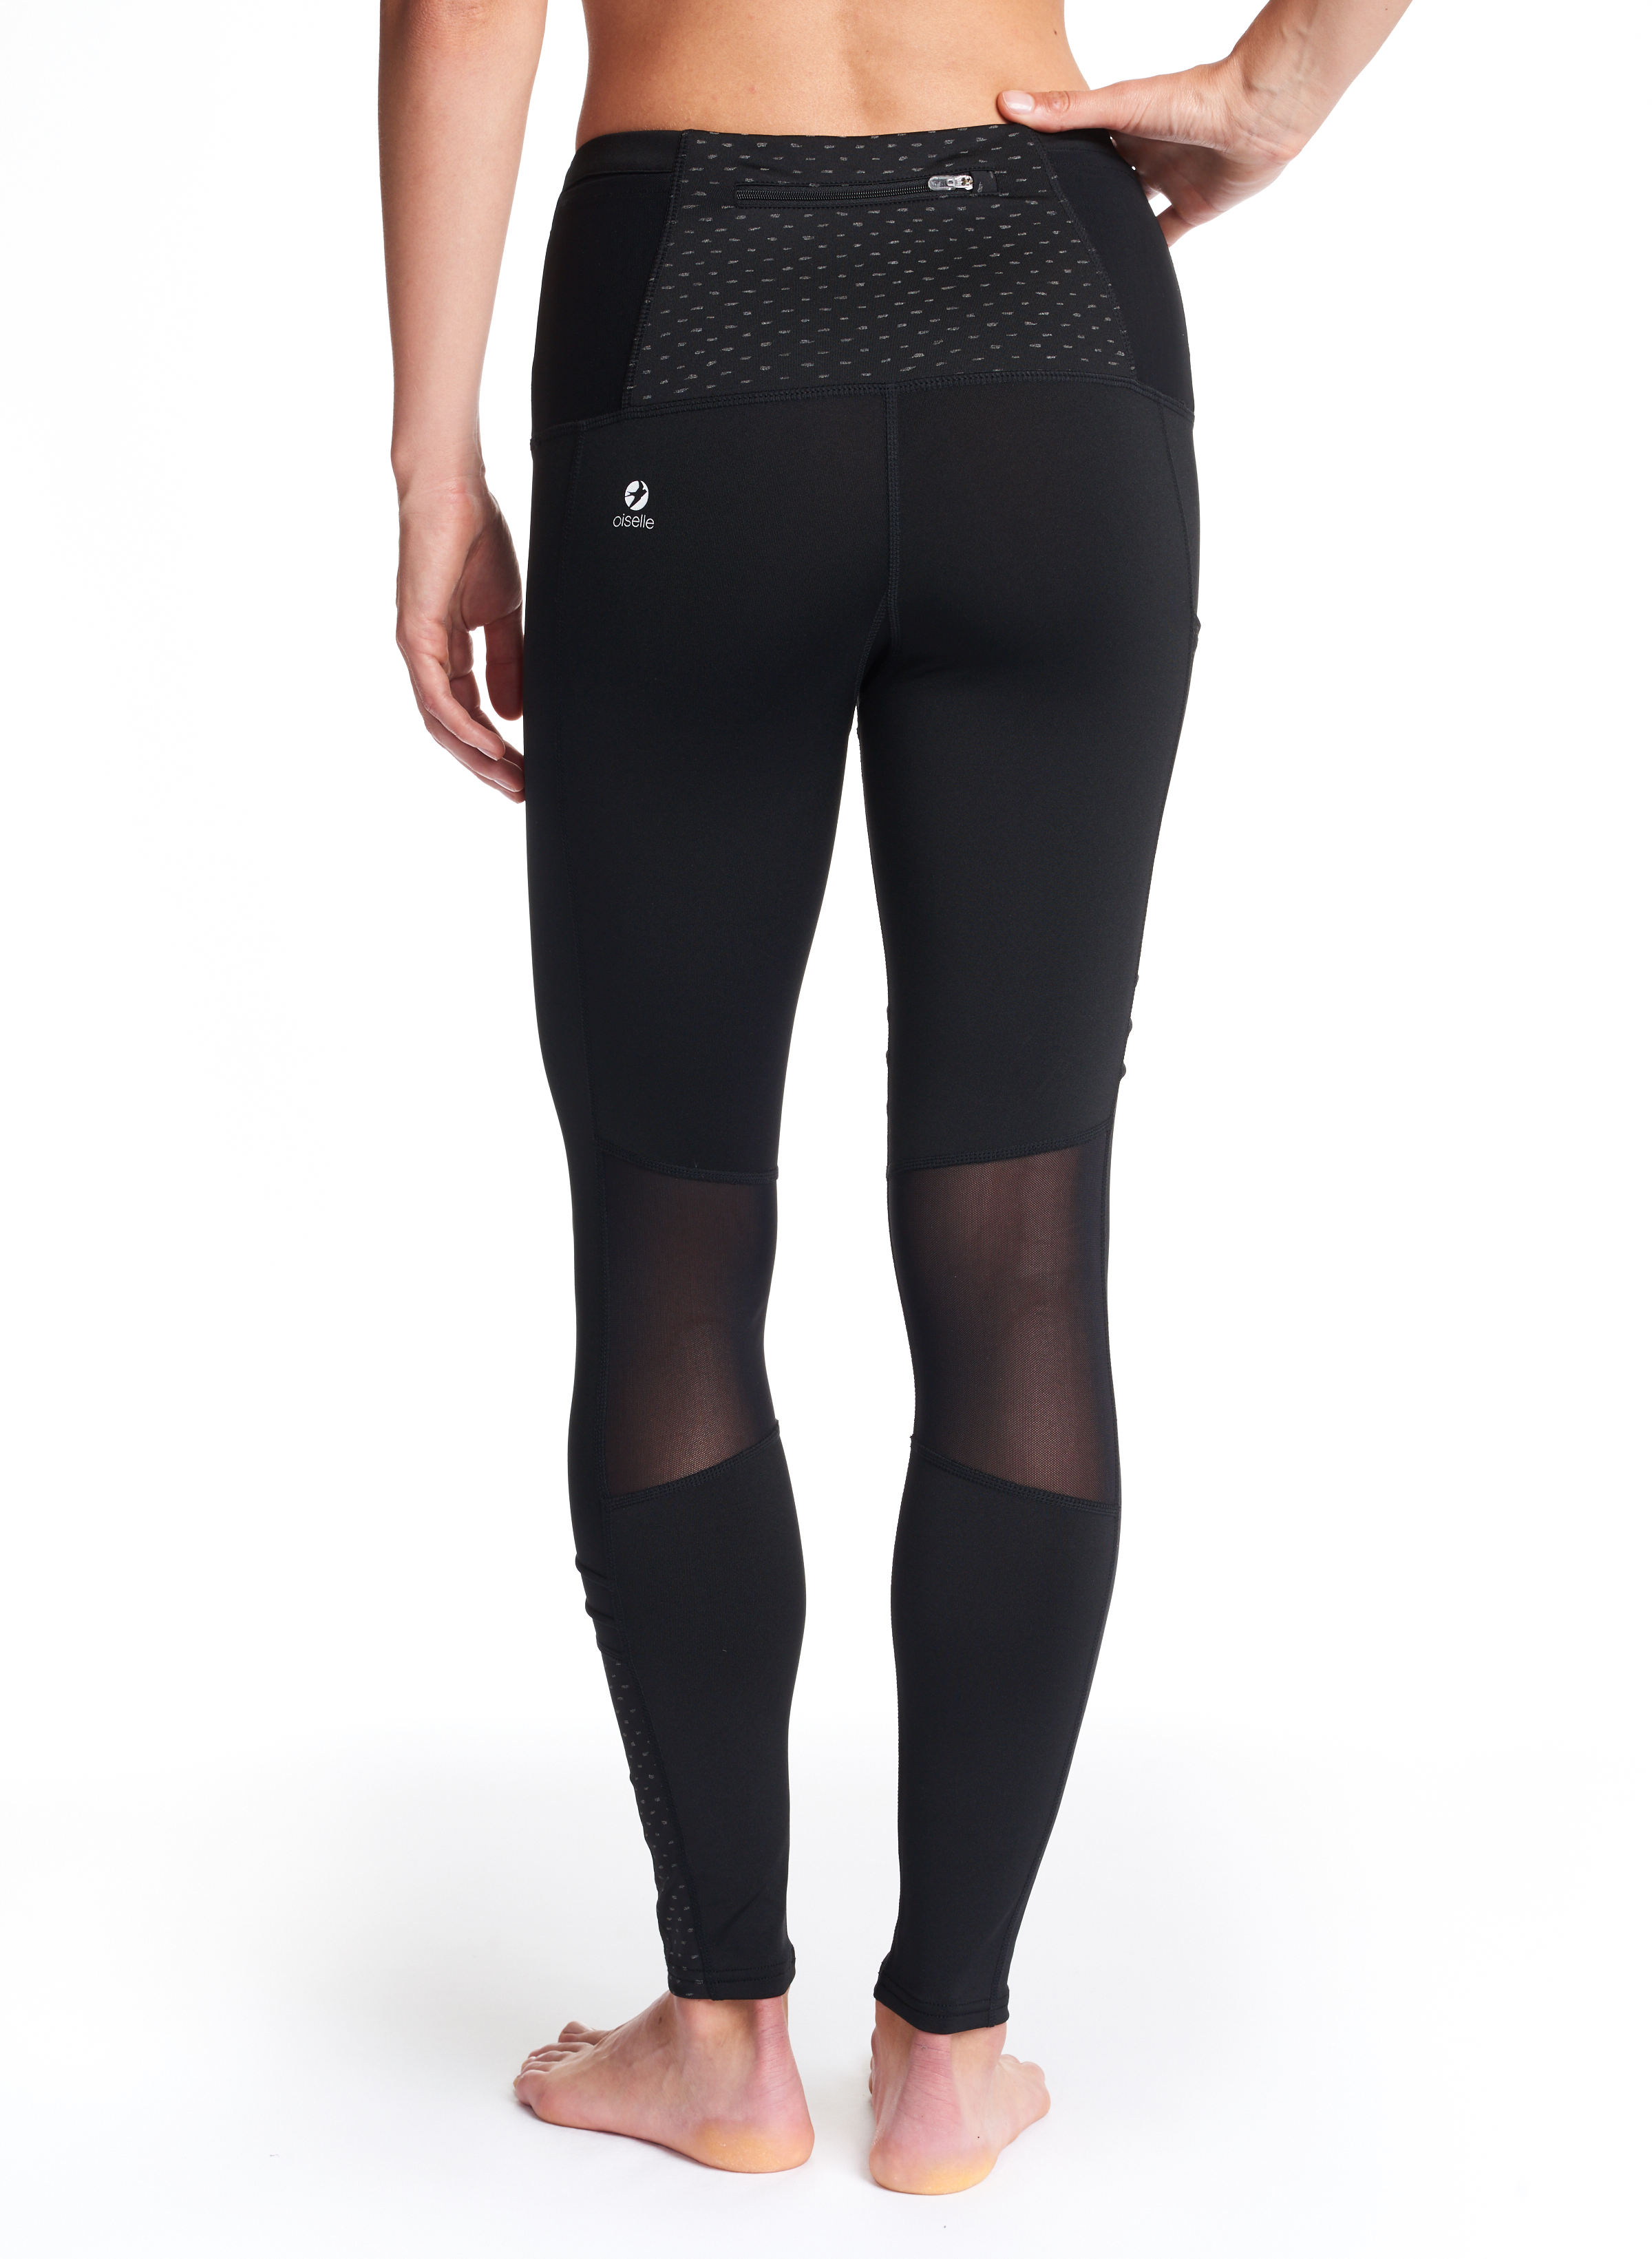 Oiselle Pocket Jogger Tights // Price: $88 // (Image: Oiselle)<p></p>